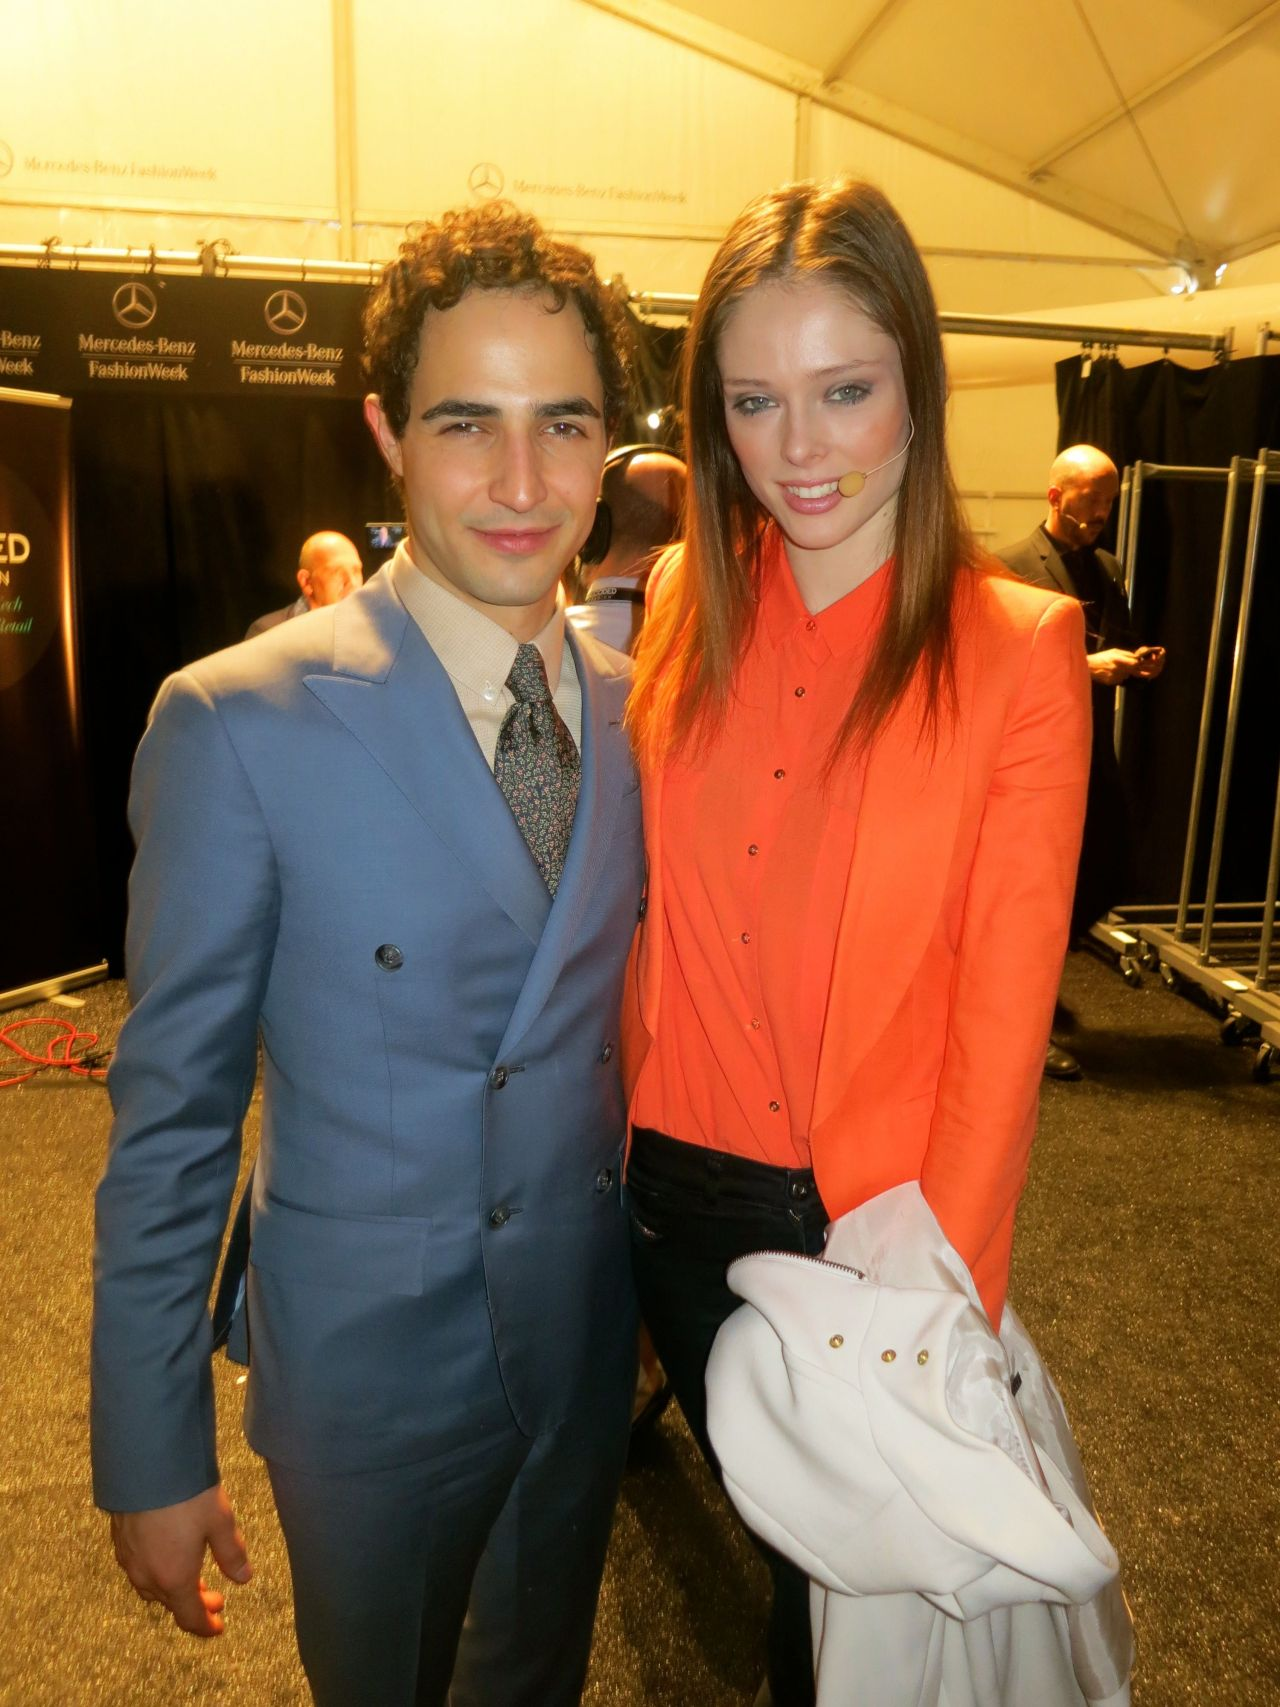 Zac and Coco backstage at Decoded Fashion at Lincoln Center.